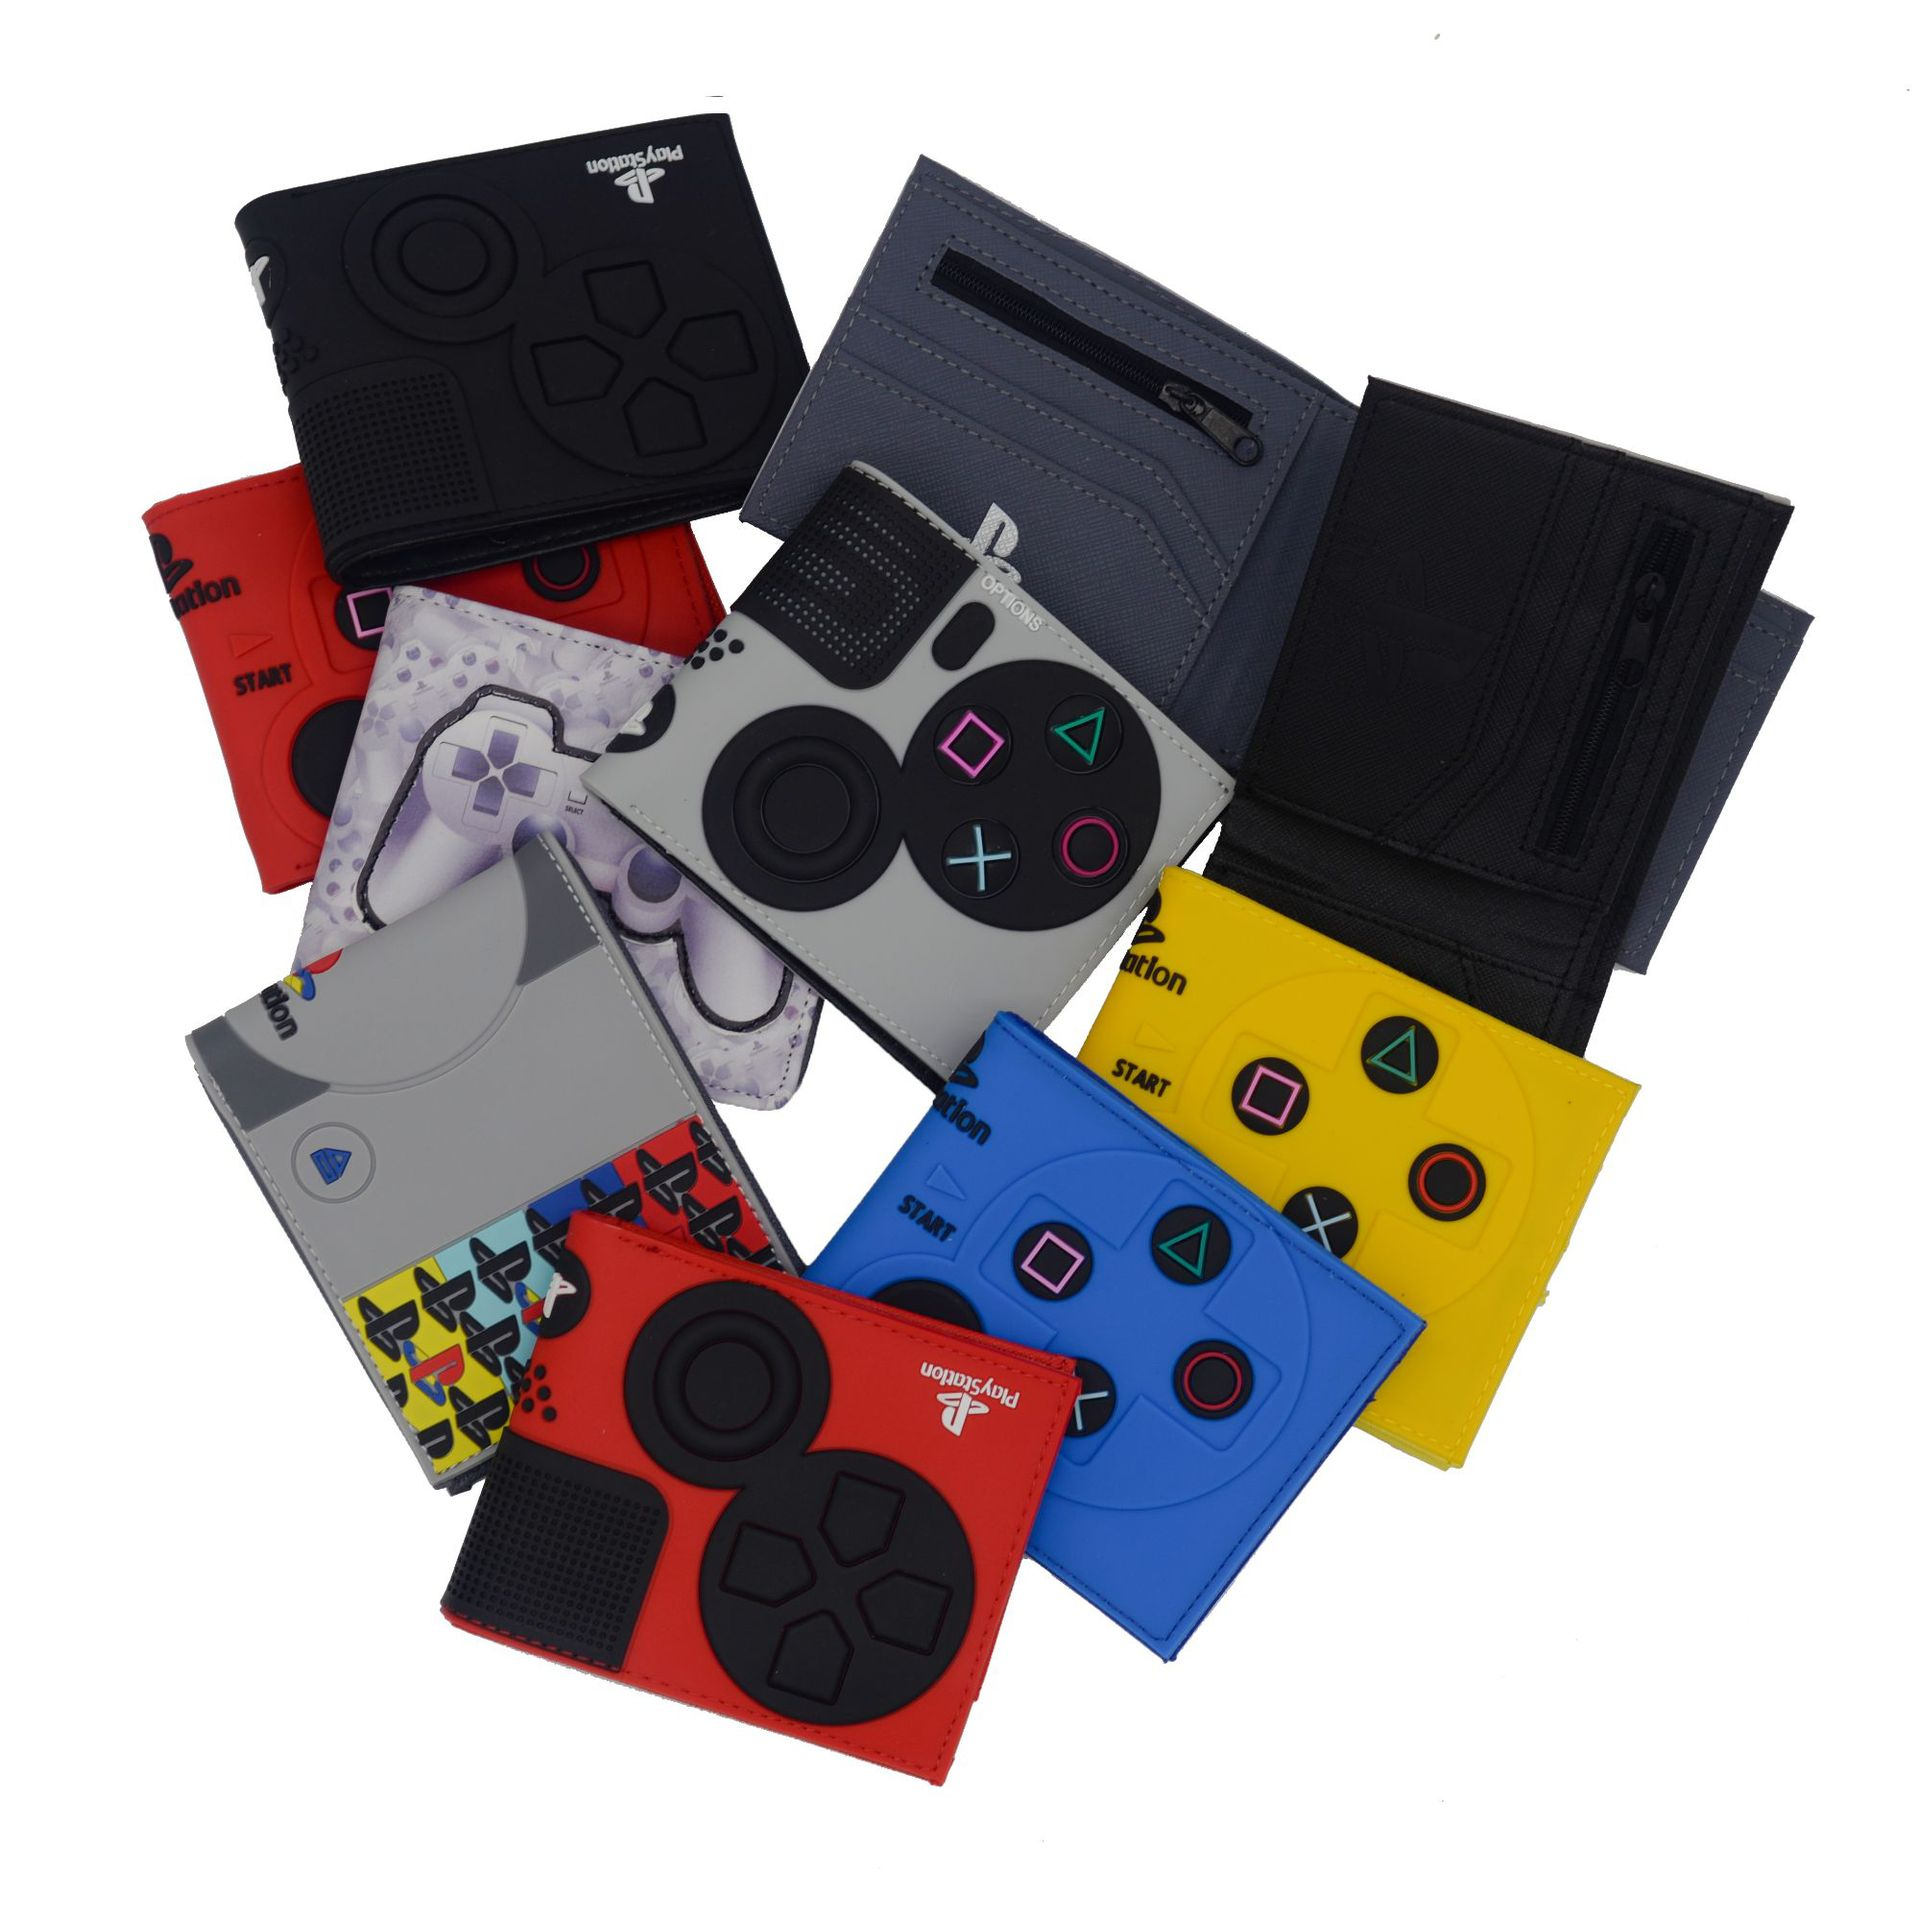 Game Handle Playstation Wallet PS1 Shape Coin Purse With Card Holder For Man Bi-Fold Coin Purse ID Card Holder PVC Short Wallet